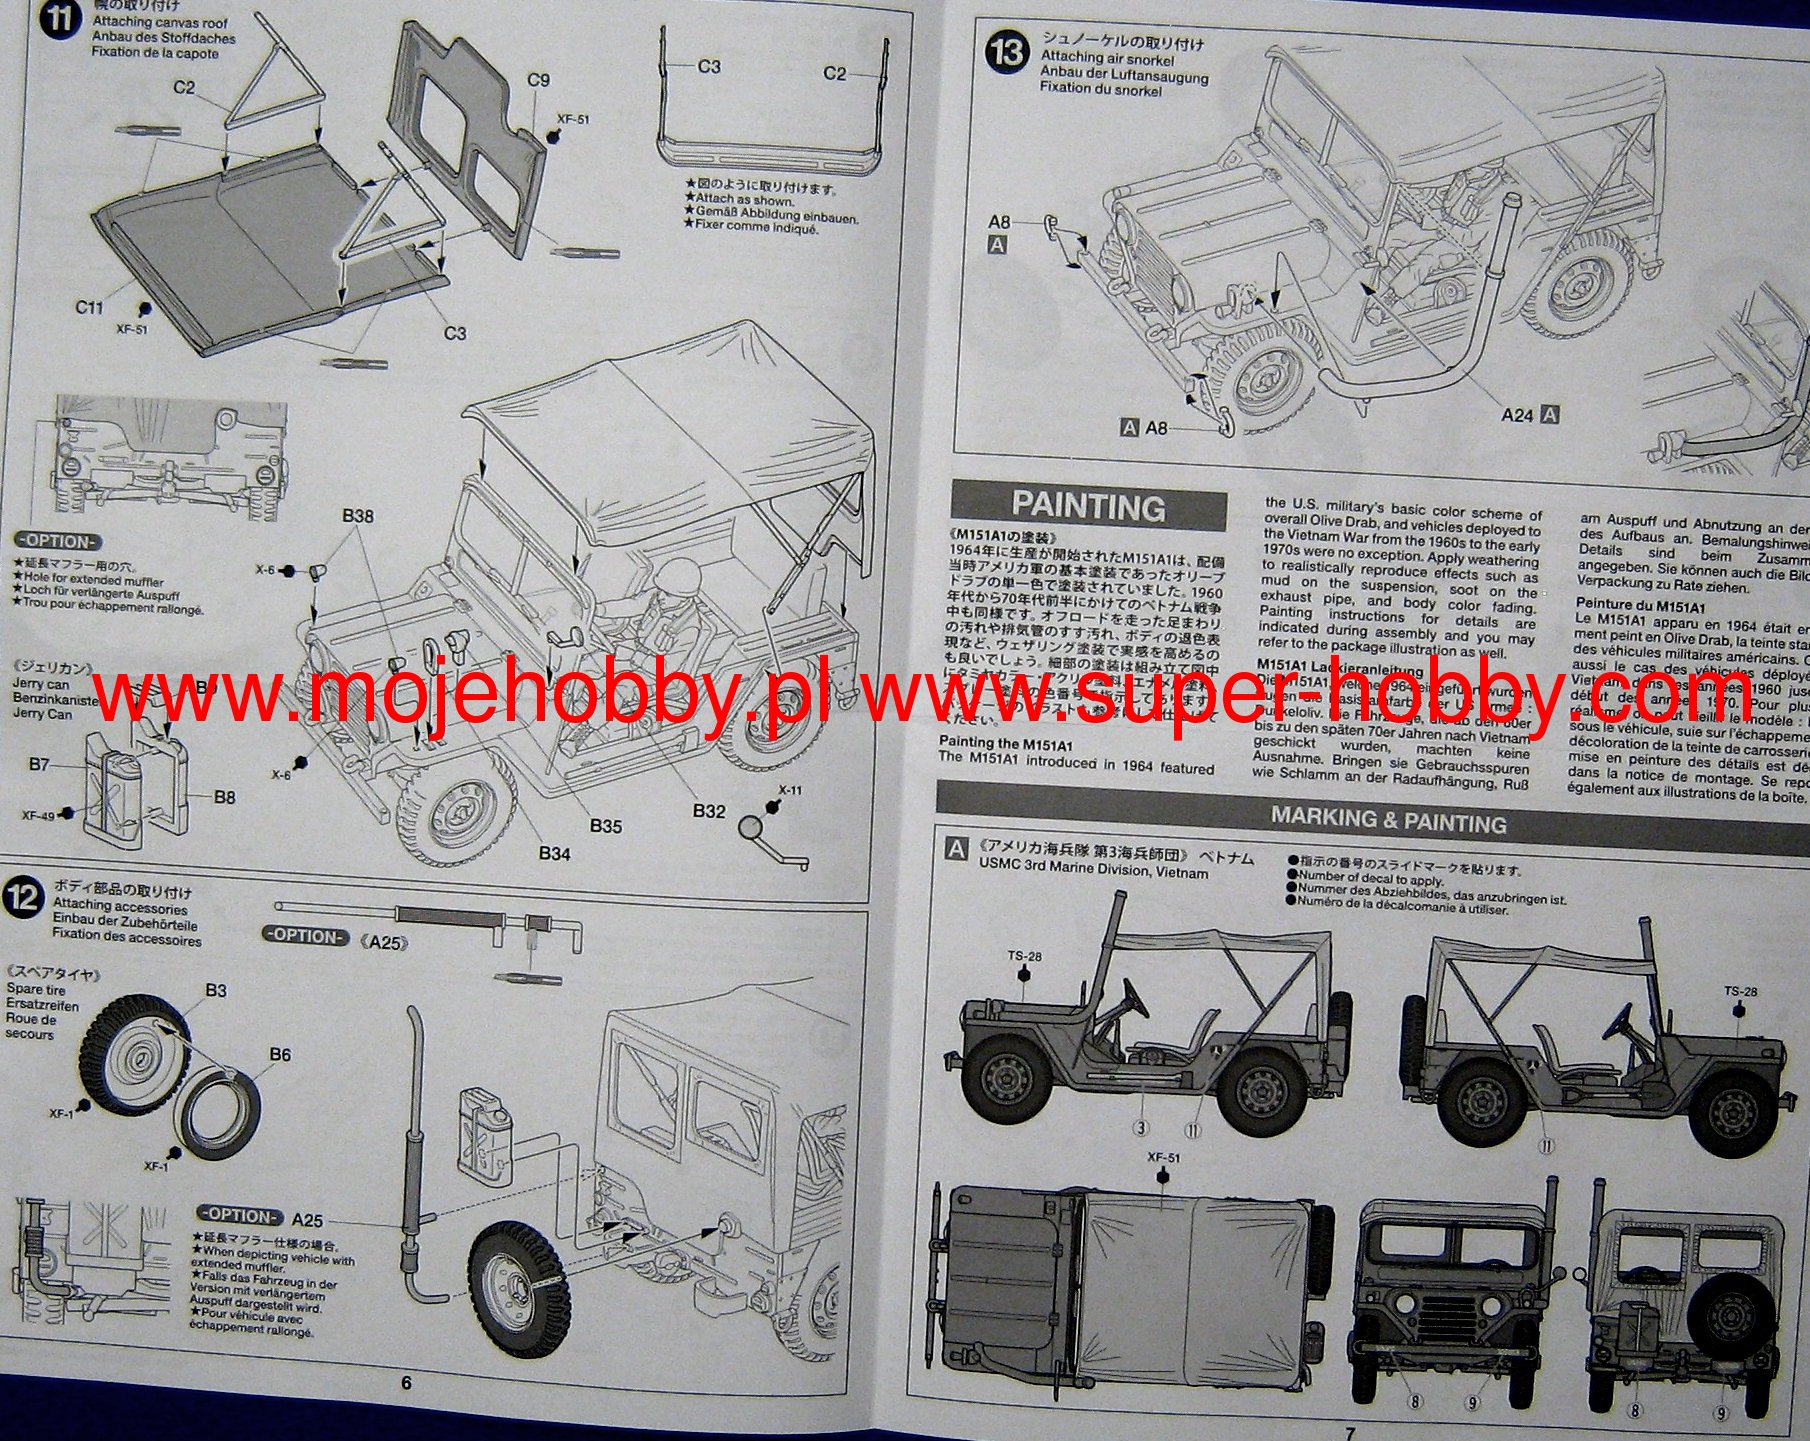 M151a1 Wiring Diagram | Wiring Liry on m38 wiring diagram, humvee wiring diagram, m37 wiring diagram, gpw wiring diagram, m38a1 wiring diagram, truck wiring diagram, m998 wiring diagram, m715 wiring diagram, windstar wiring diagram, ambulance wiring diagram, m151 wiring diagram, dodge caliber wiring diagram, 4x4 wiring diagram, m151a2 wiring diagram, jeep wiring diagram, willys wiring diagram, m35a2 wiring diagram, van wiring diagram, mutt wiring diagram, hummer wiring diagram,